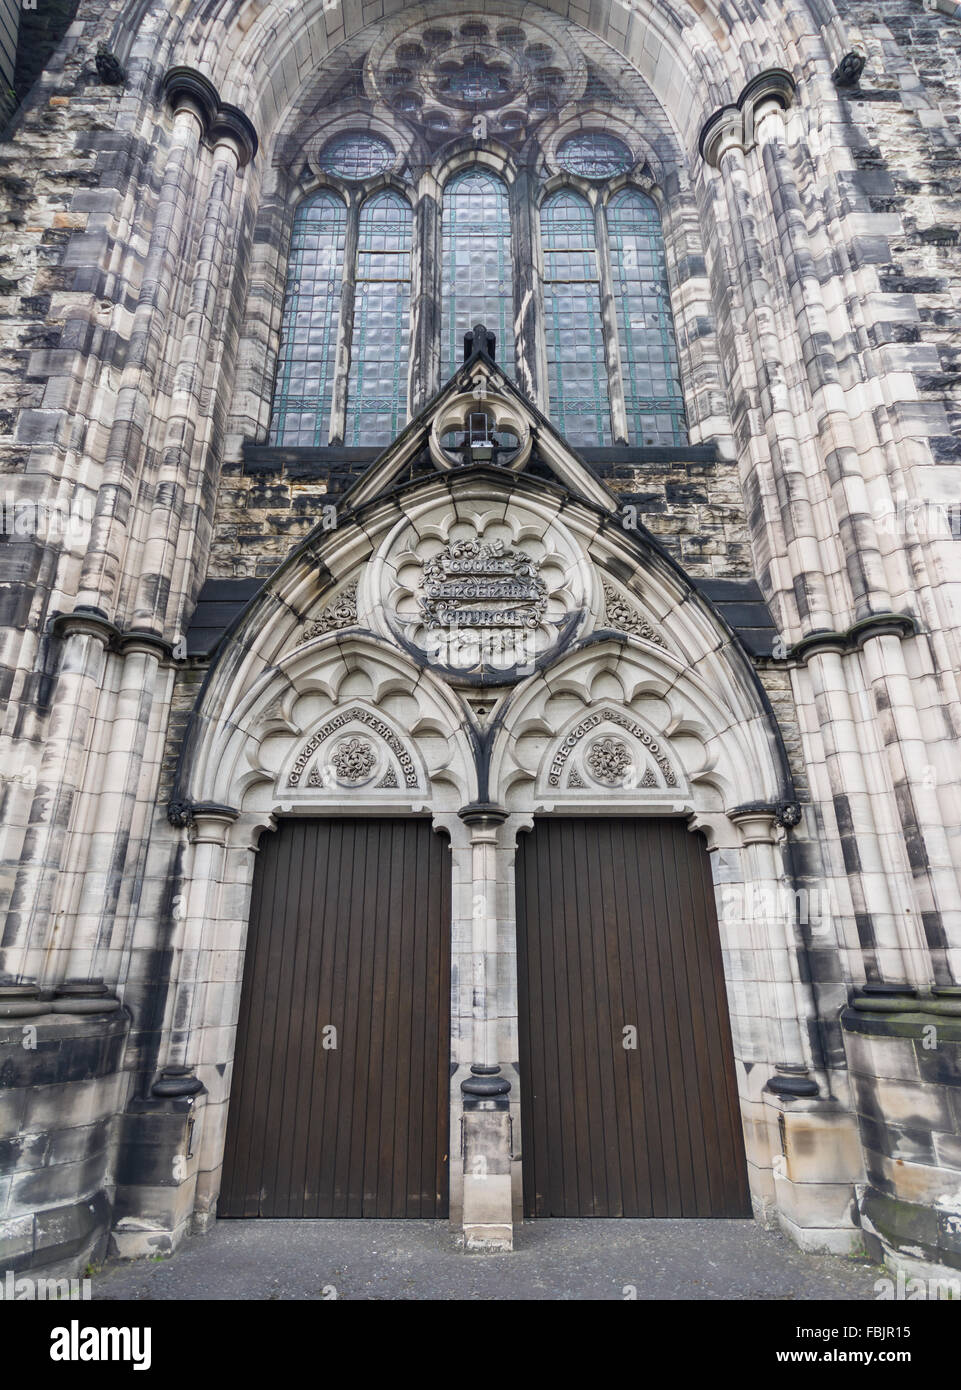 A Fantastic And Unique Church Door Entrance With Two Wooden Doors.   Stock  Image